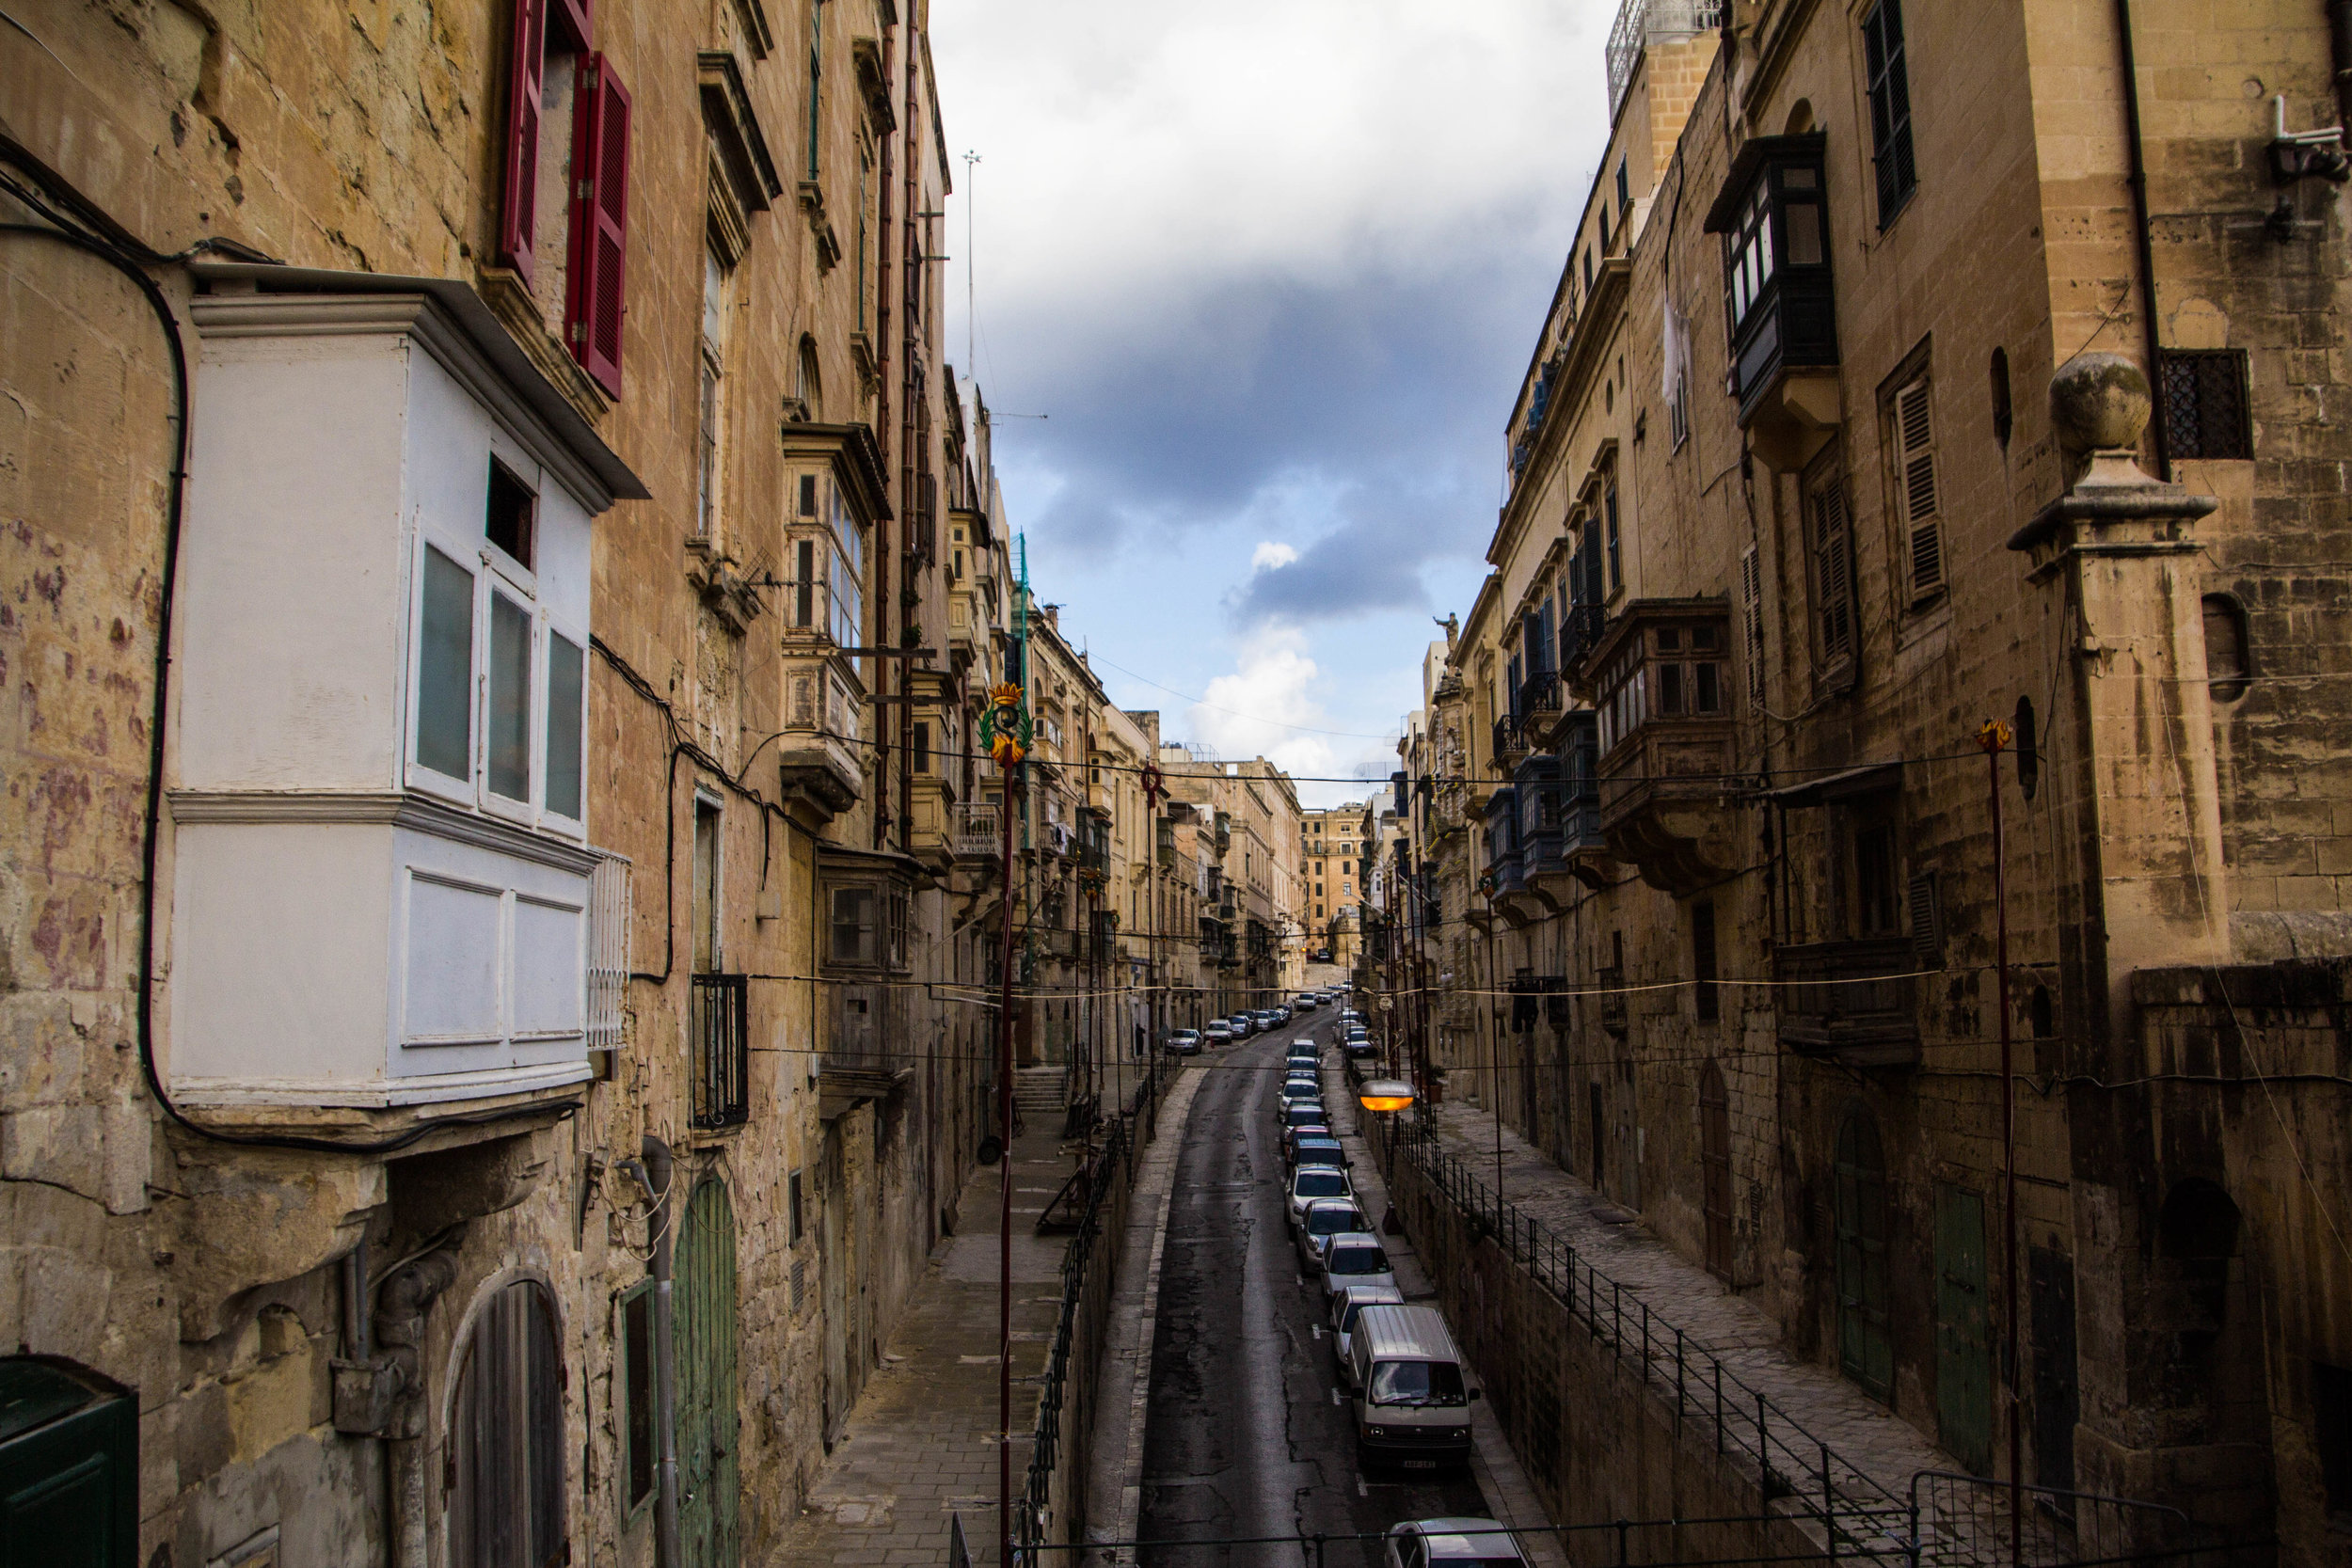 valletta-malta-clouds-rain-streets-photography-12.jpg